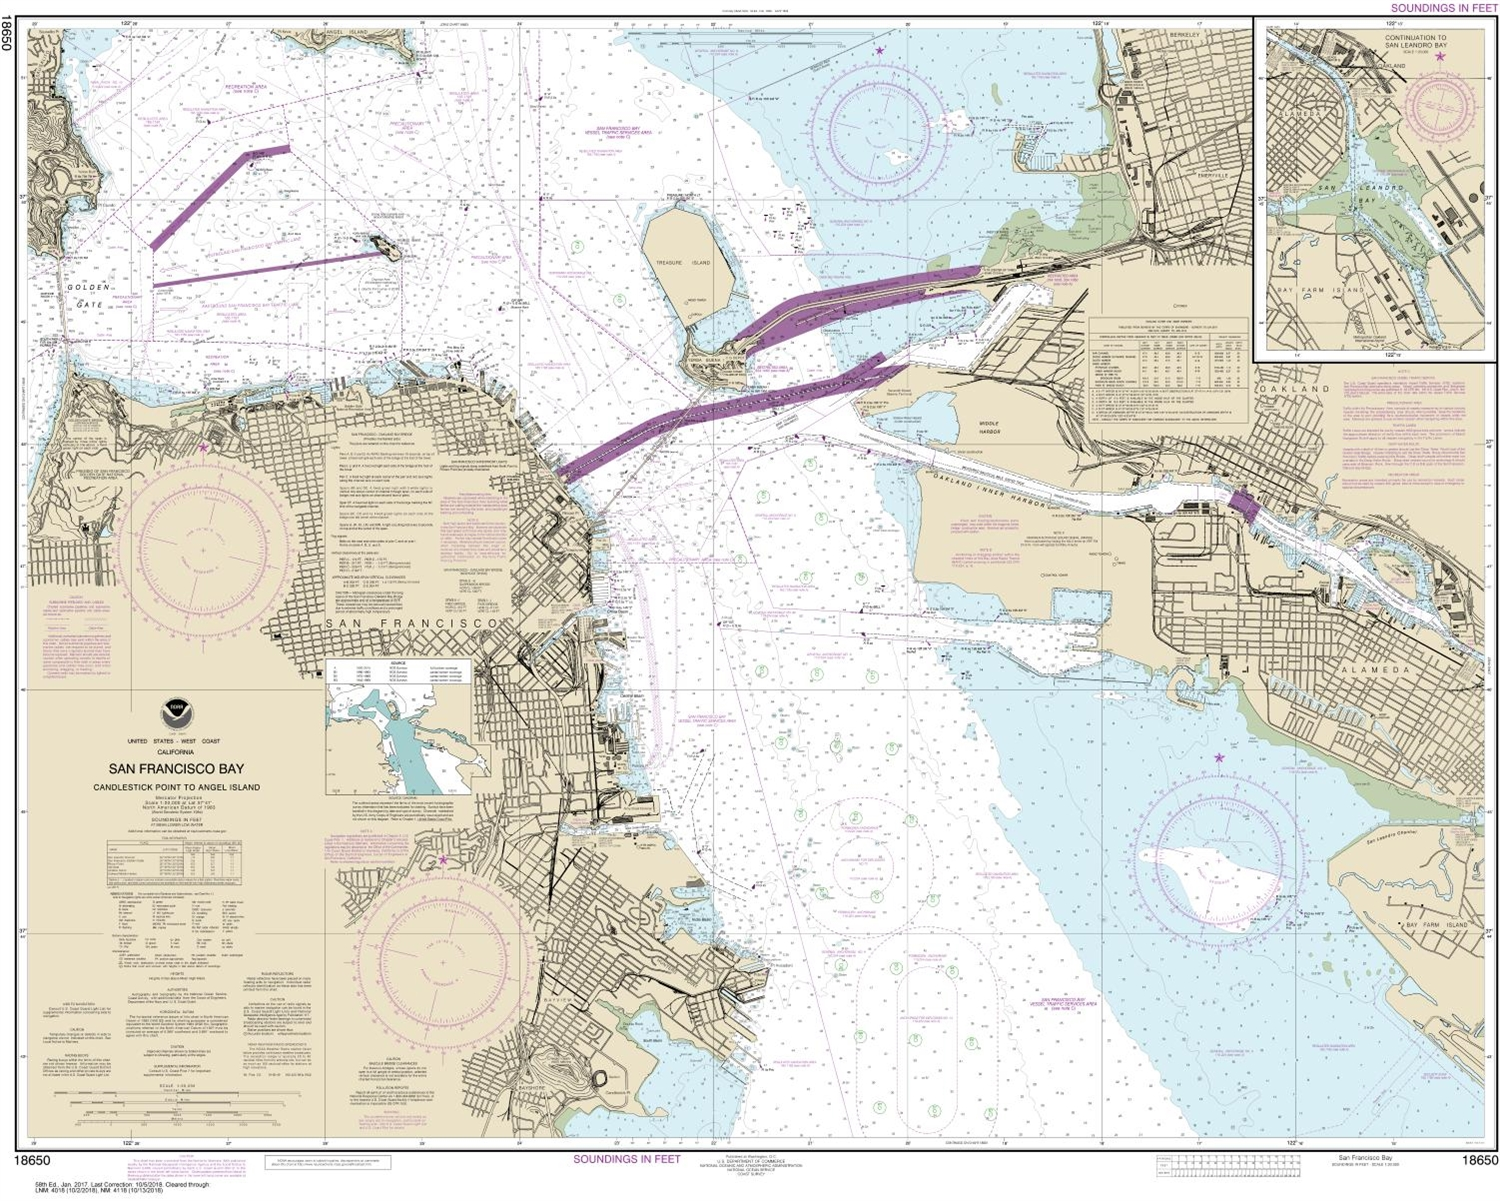 Noaa Chart 18650 Nautical Of San Francisco Bay Candlestick Point To Angel Island